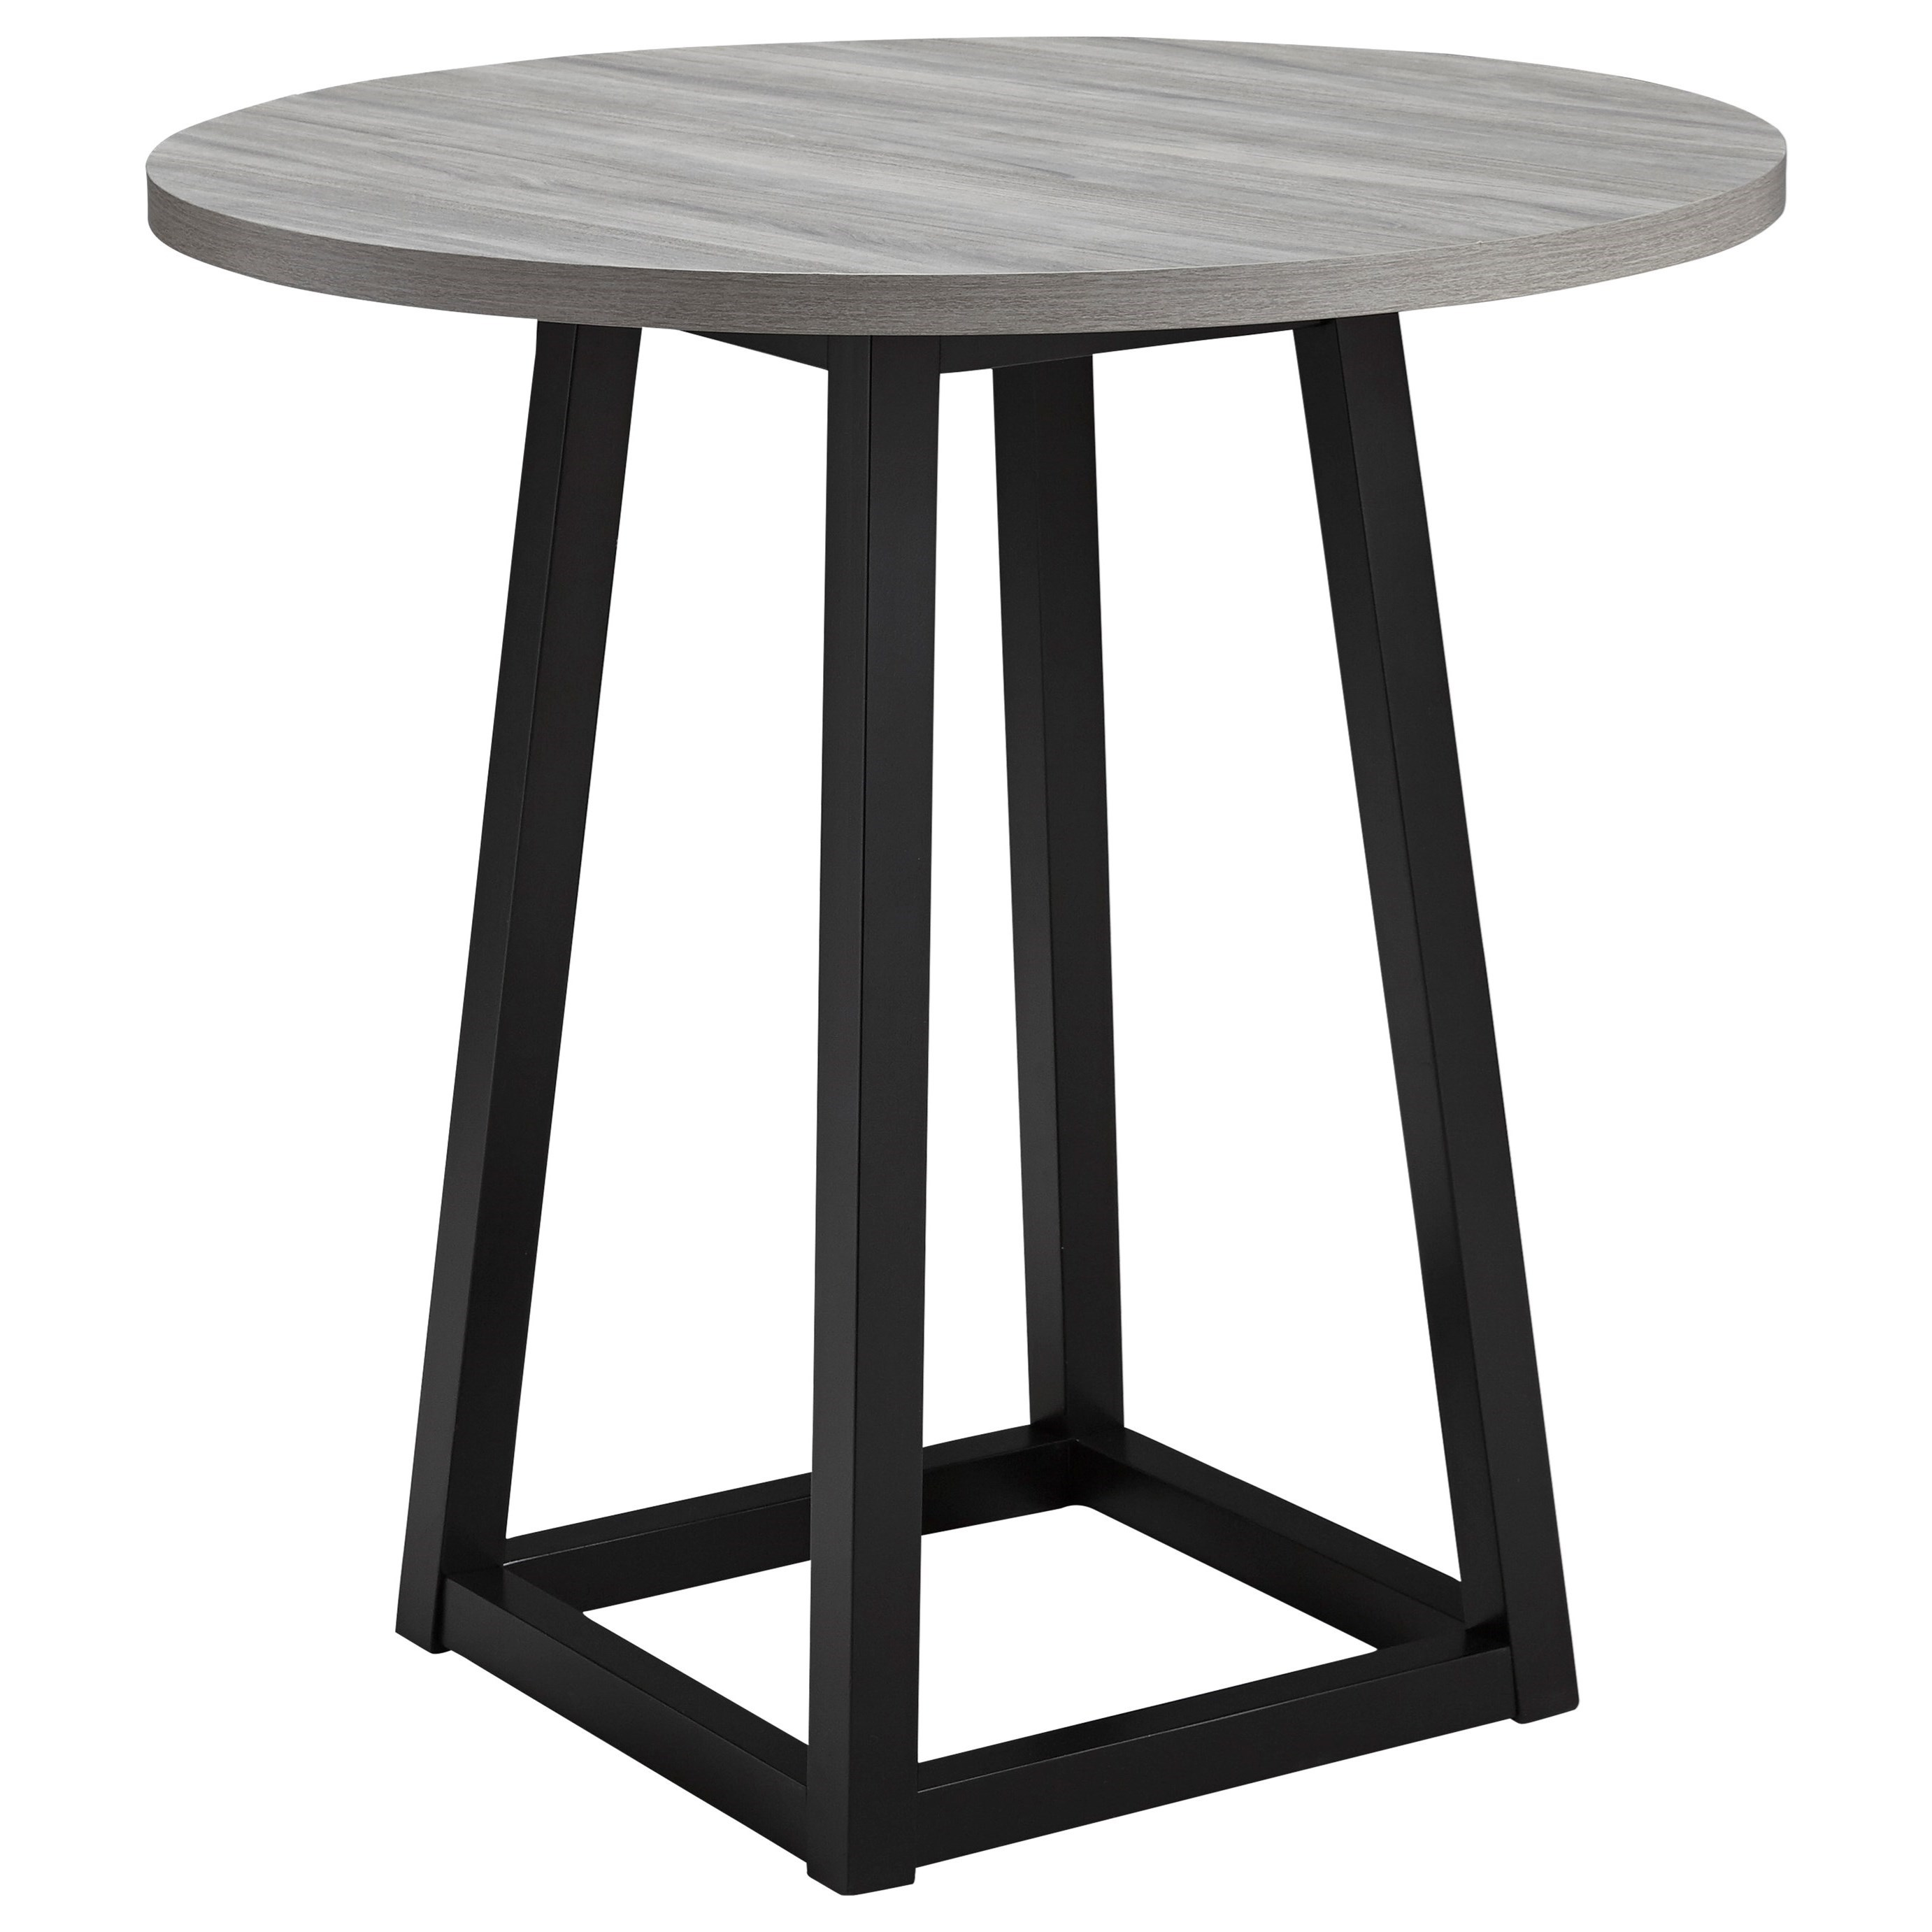 Showdell Round Counter Table by Signature Design by Ashley at Northeast Factory Direct